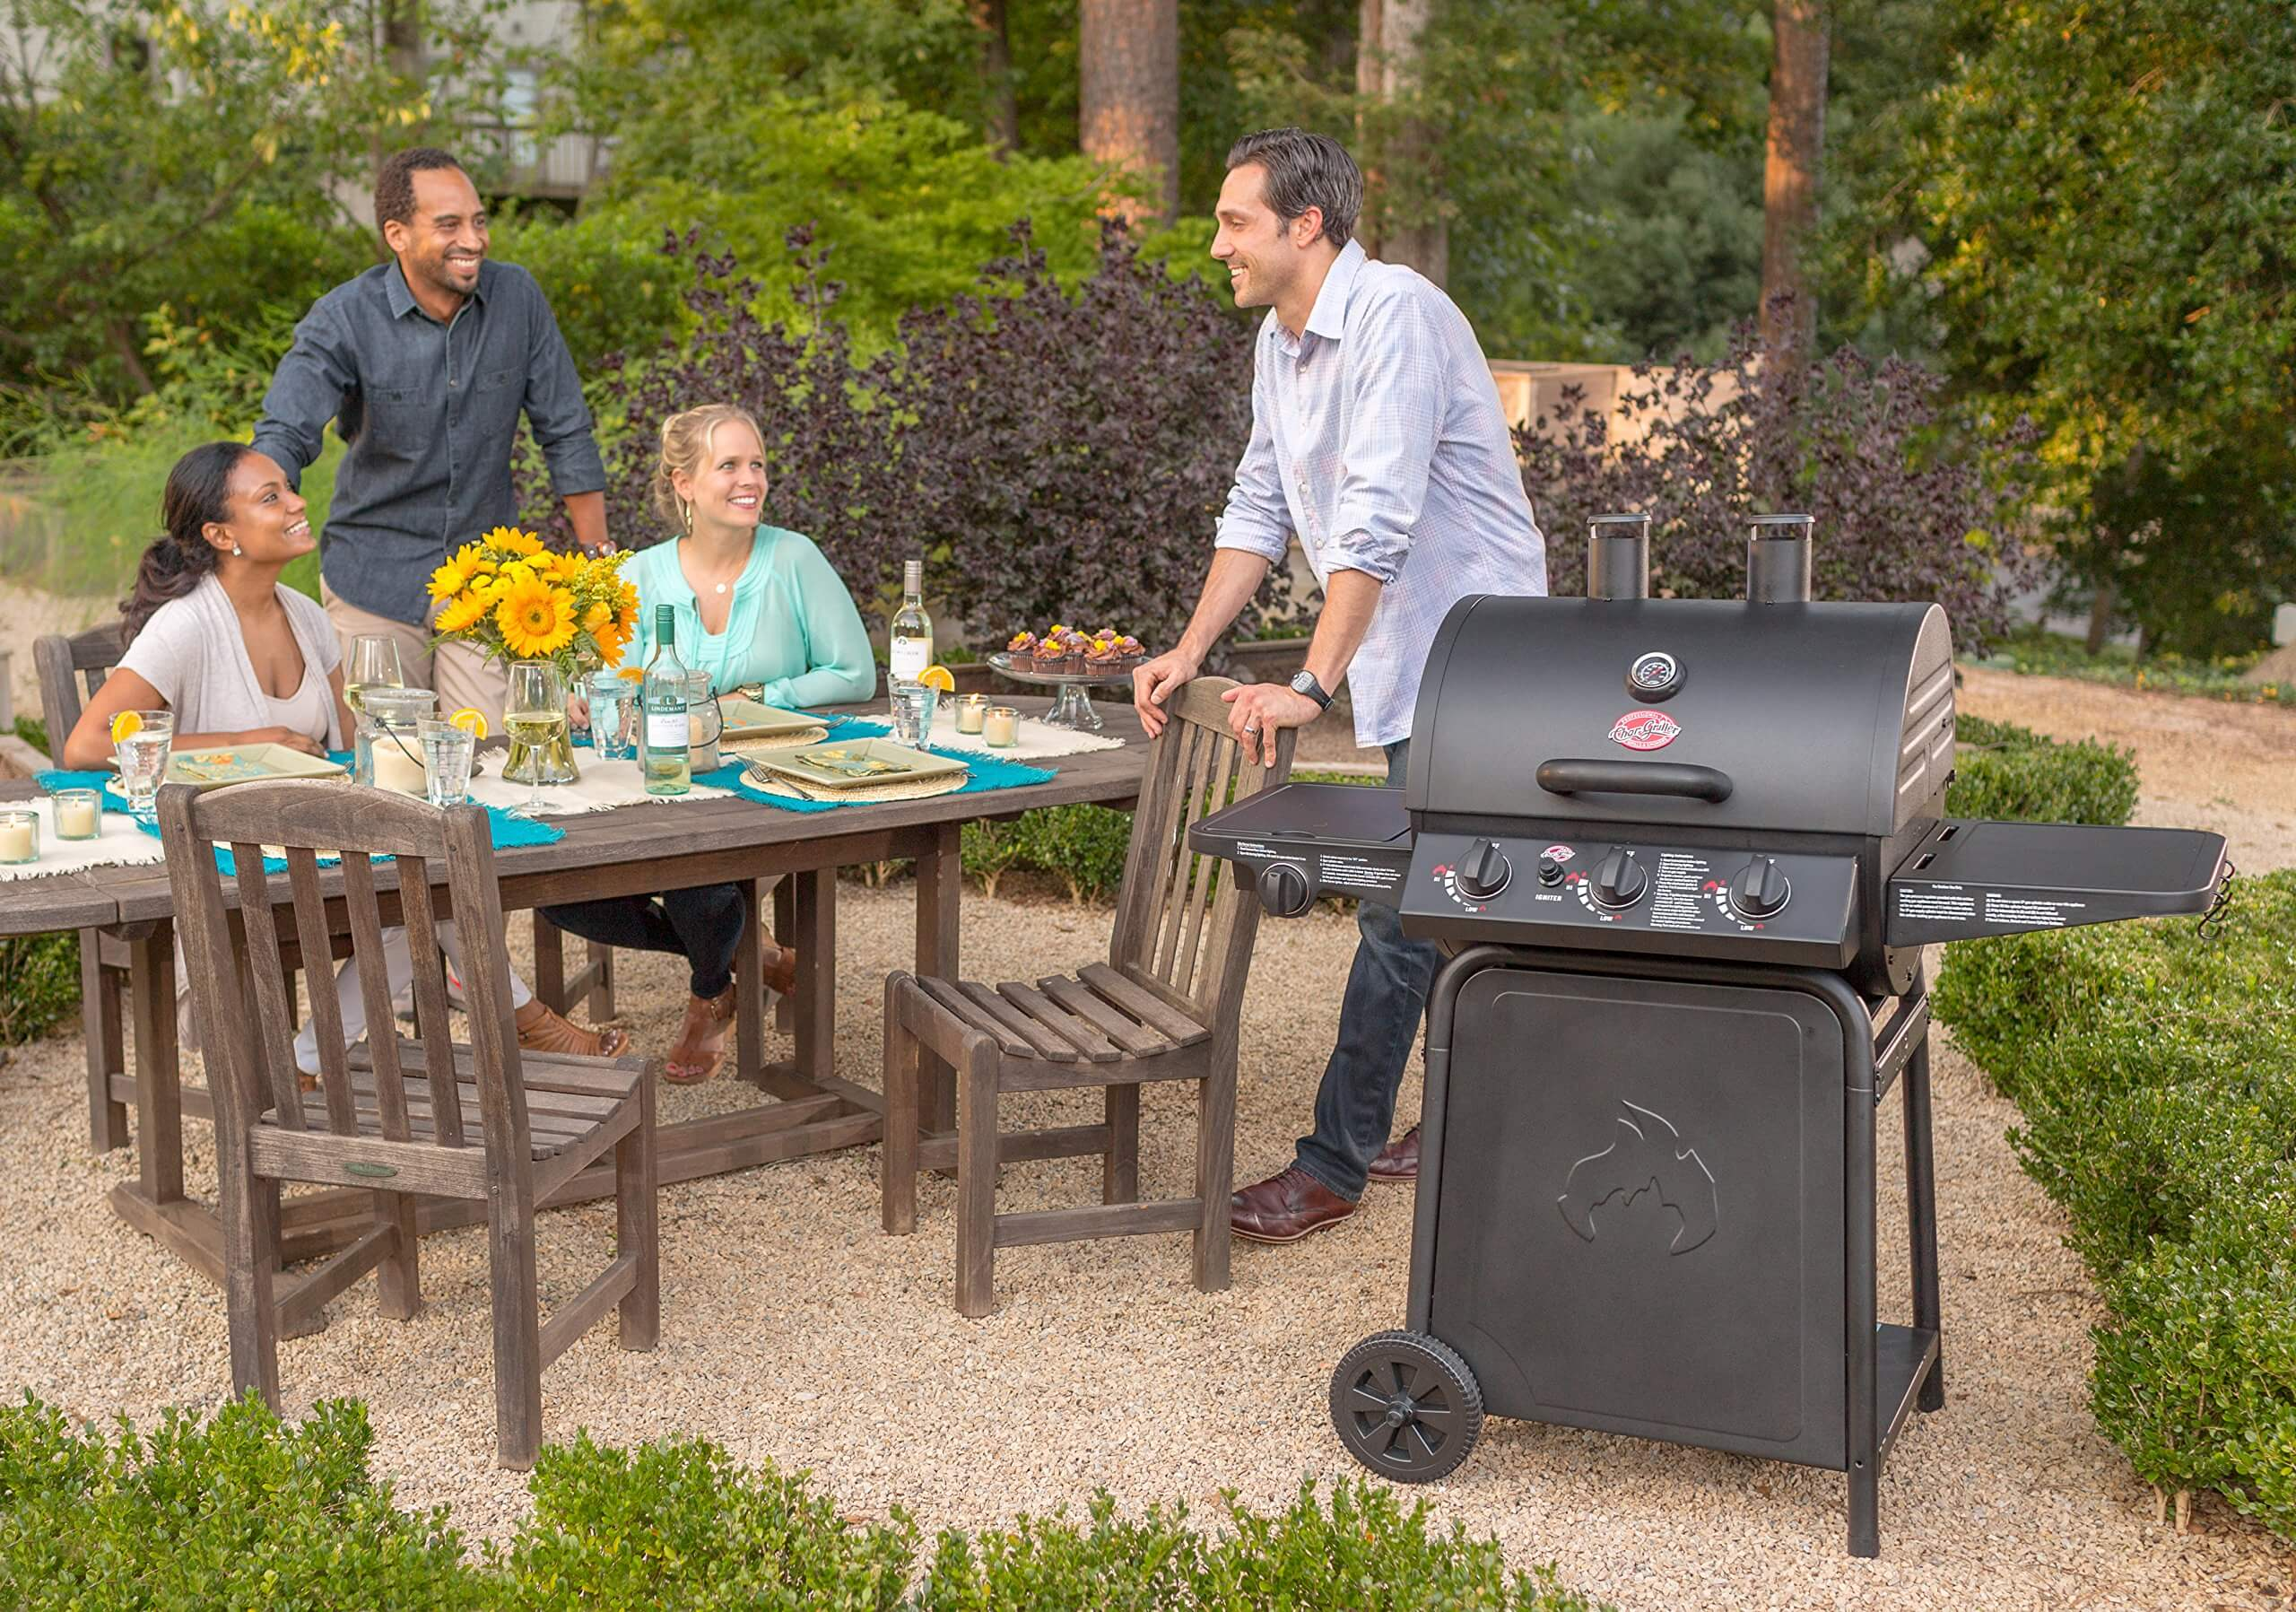 best price on char broil gas grills, best propane grills 2020